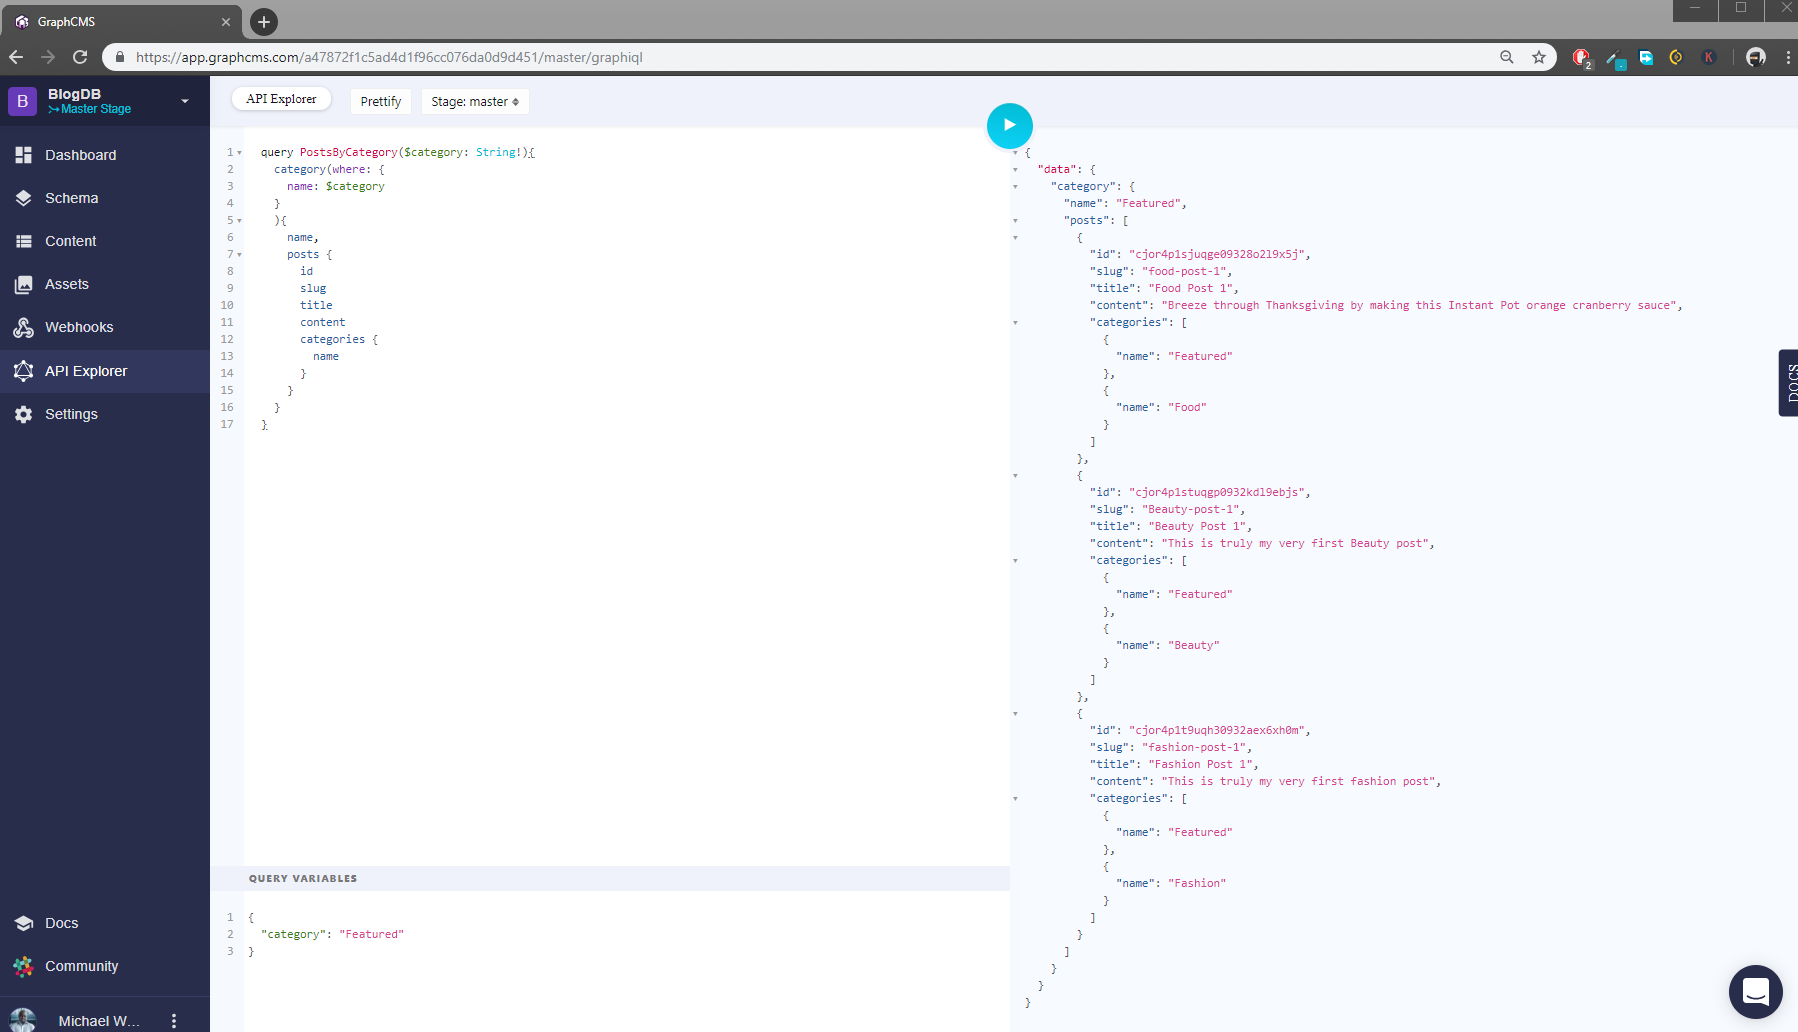 A GraphCMS query example